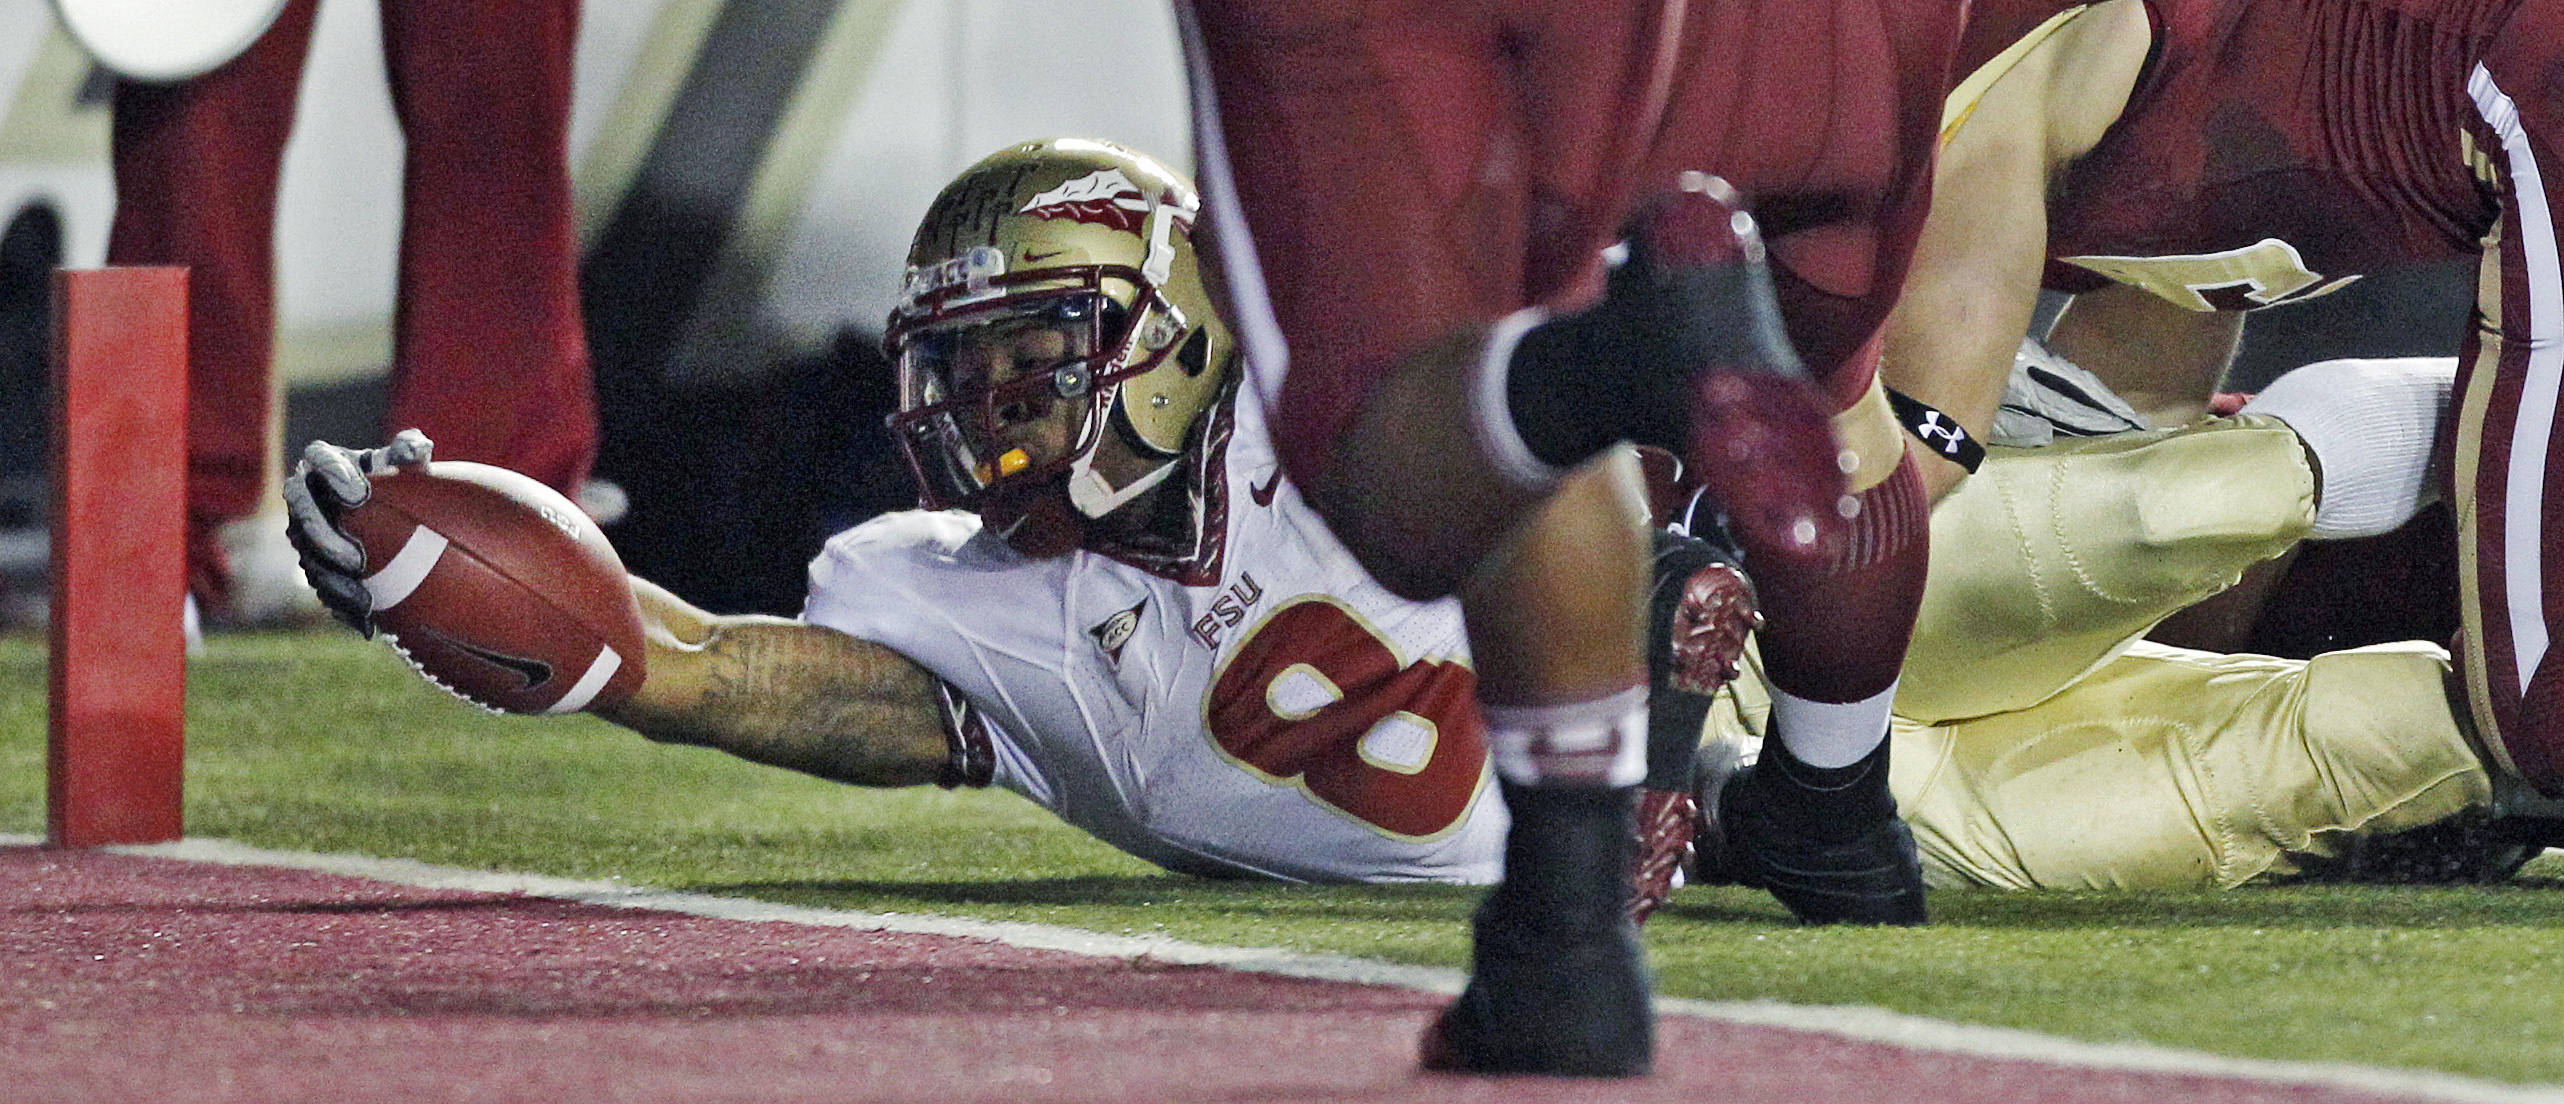 Florida State running back Devonta Freeman stretches but comes up short on a goal line drive to the end zone during the first half. (AP Photo/Charles Krupa)